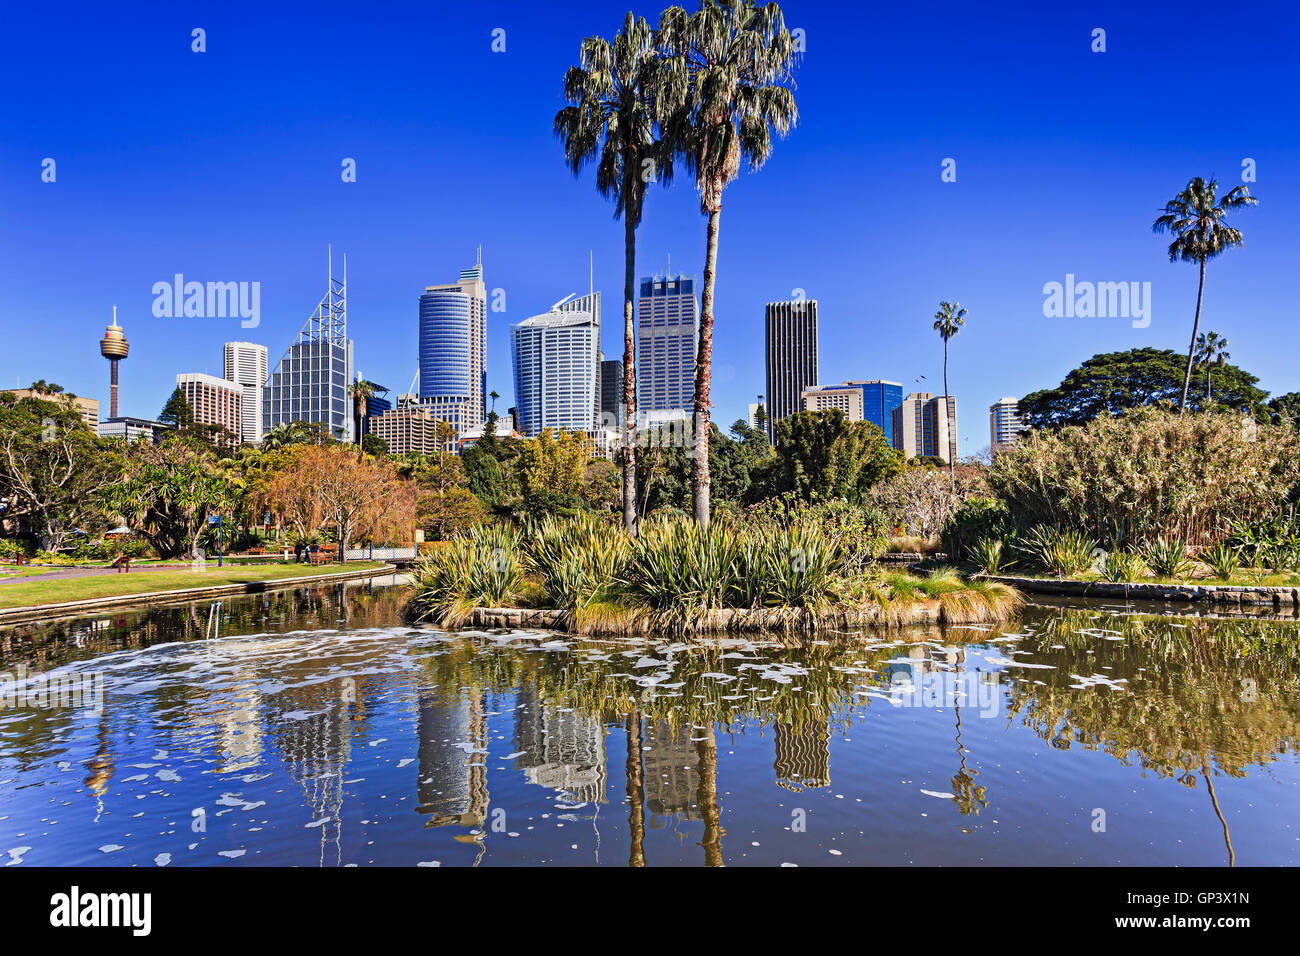 Royal Botanic Garden pond in Sydney with city CBD in a background on horizon reflecting in water. Palm trees and - Stock Image